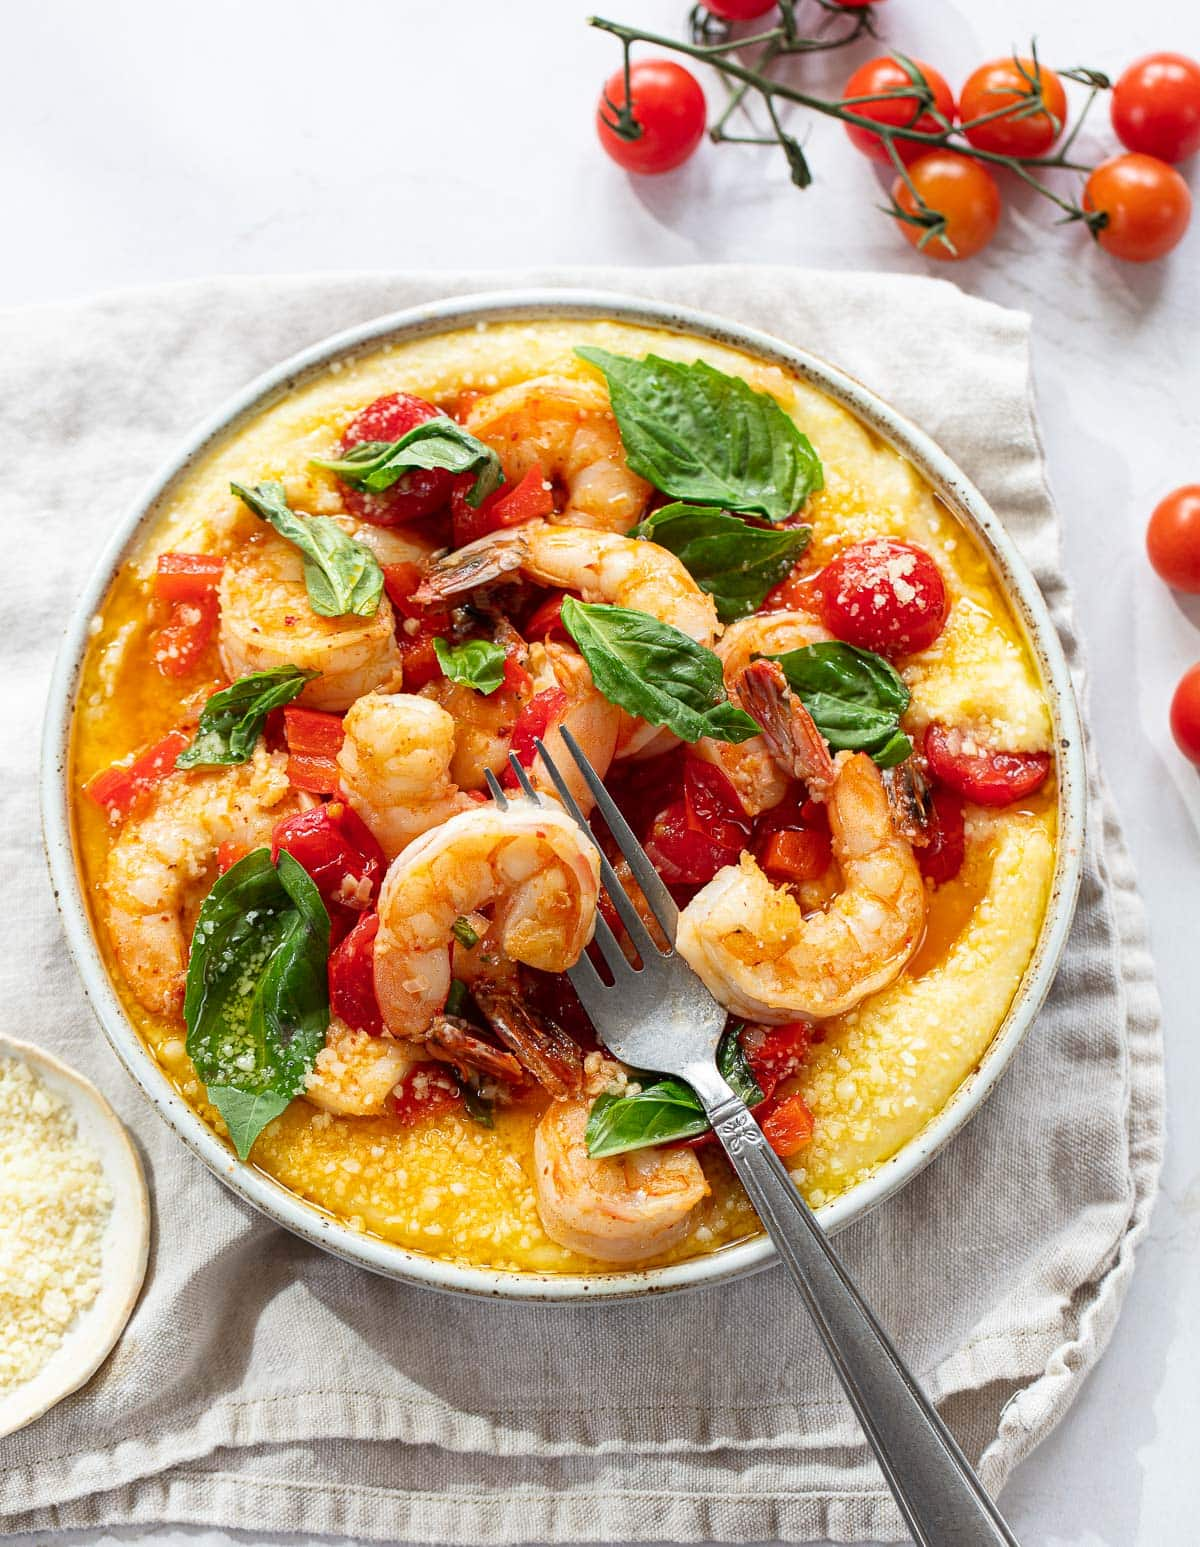 A bowl of soft creamy yellow polenta topped with whole shrimp, cherry tomatoes and fresh basil leaves.